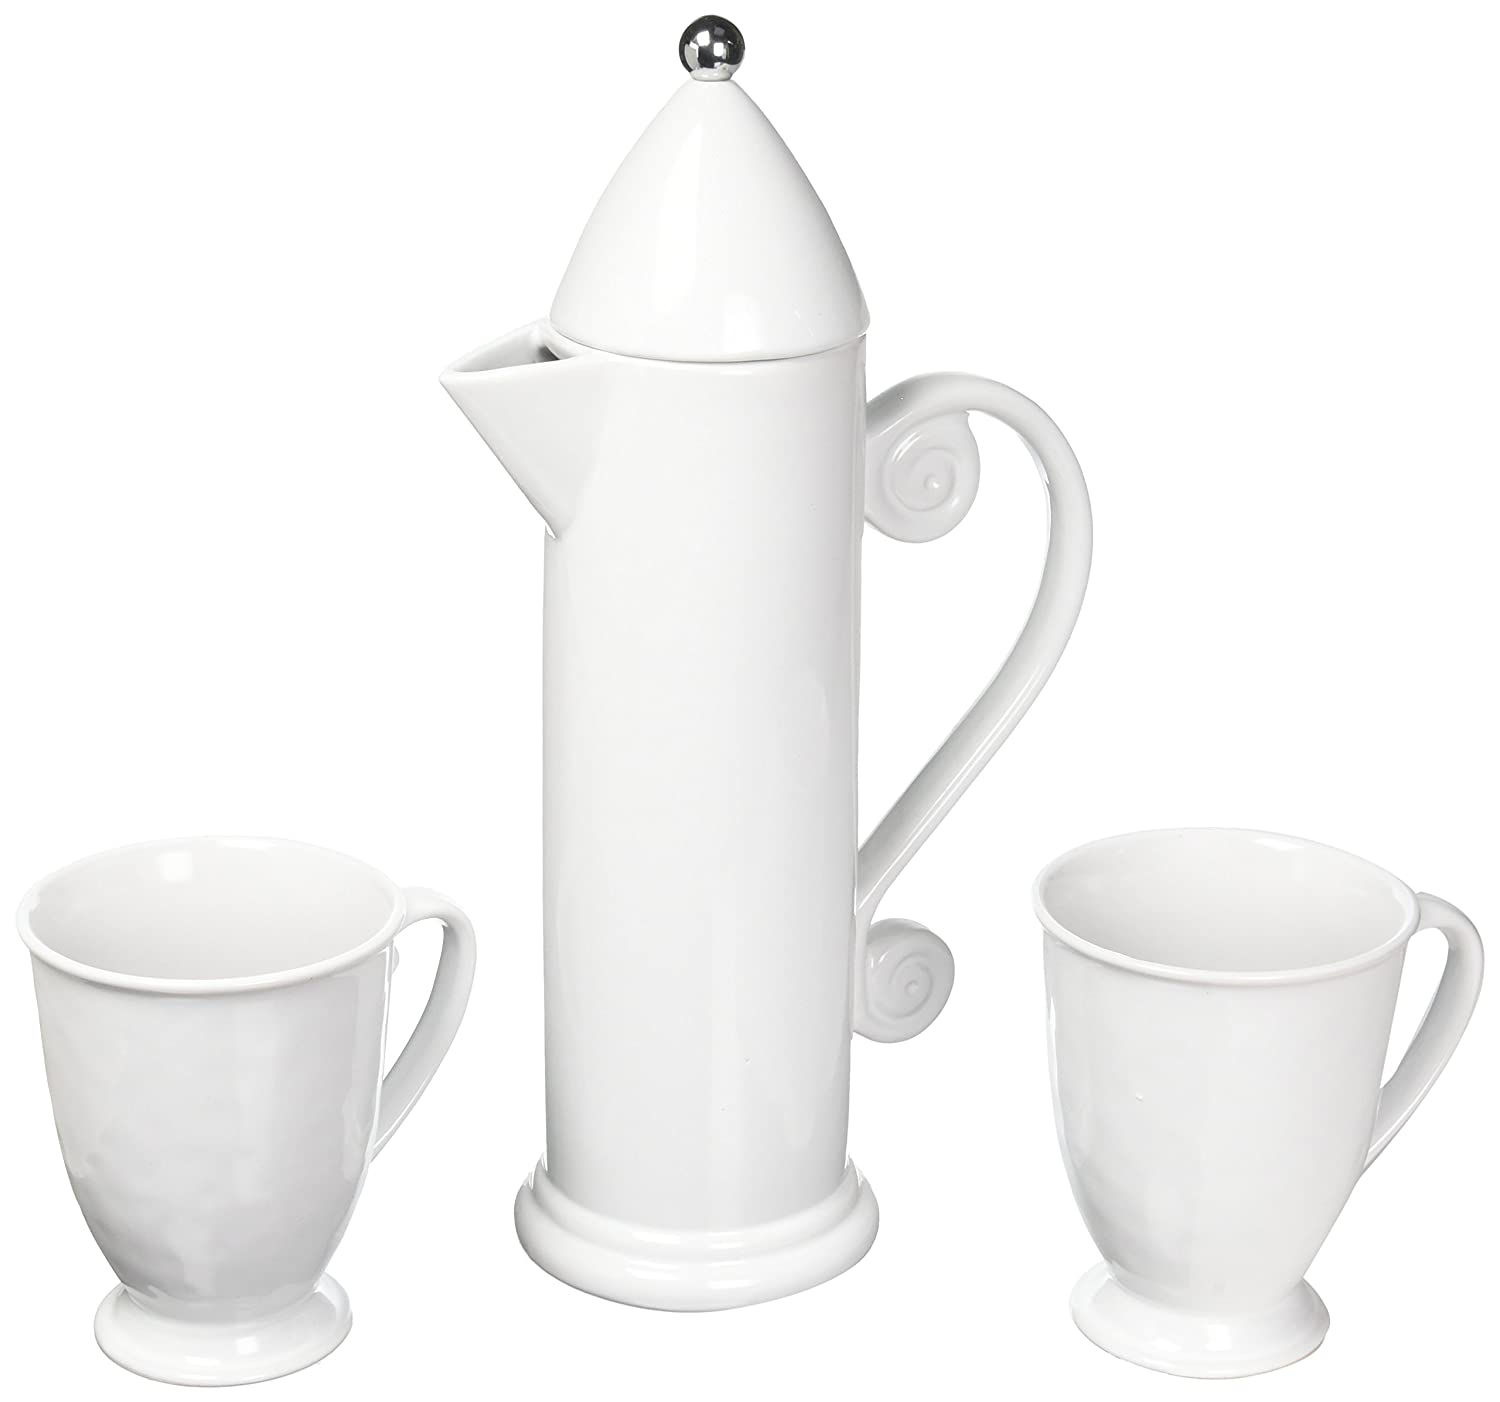 Francois et Mimi Ceramic French Press for Coffee and Tea, 27oz, Comes with 2 Large-Sized Ceramic Cups, Mugs (Blue) FP202F3Y